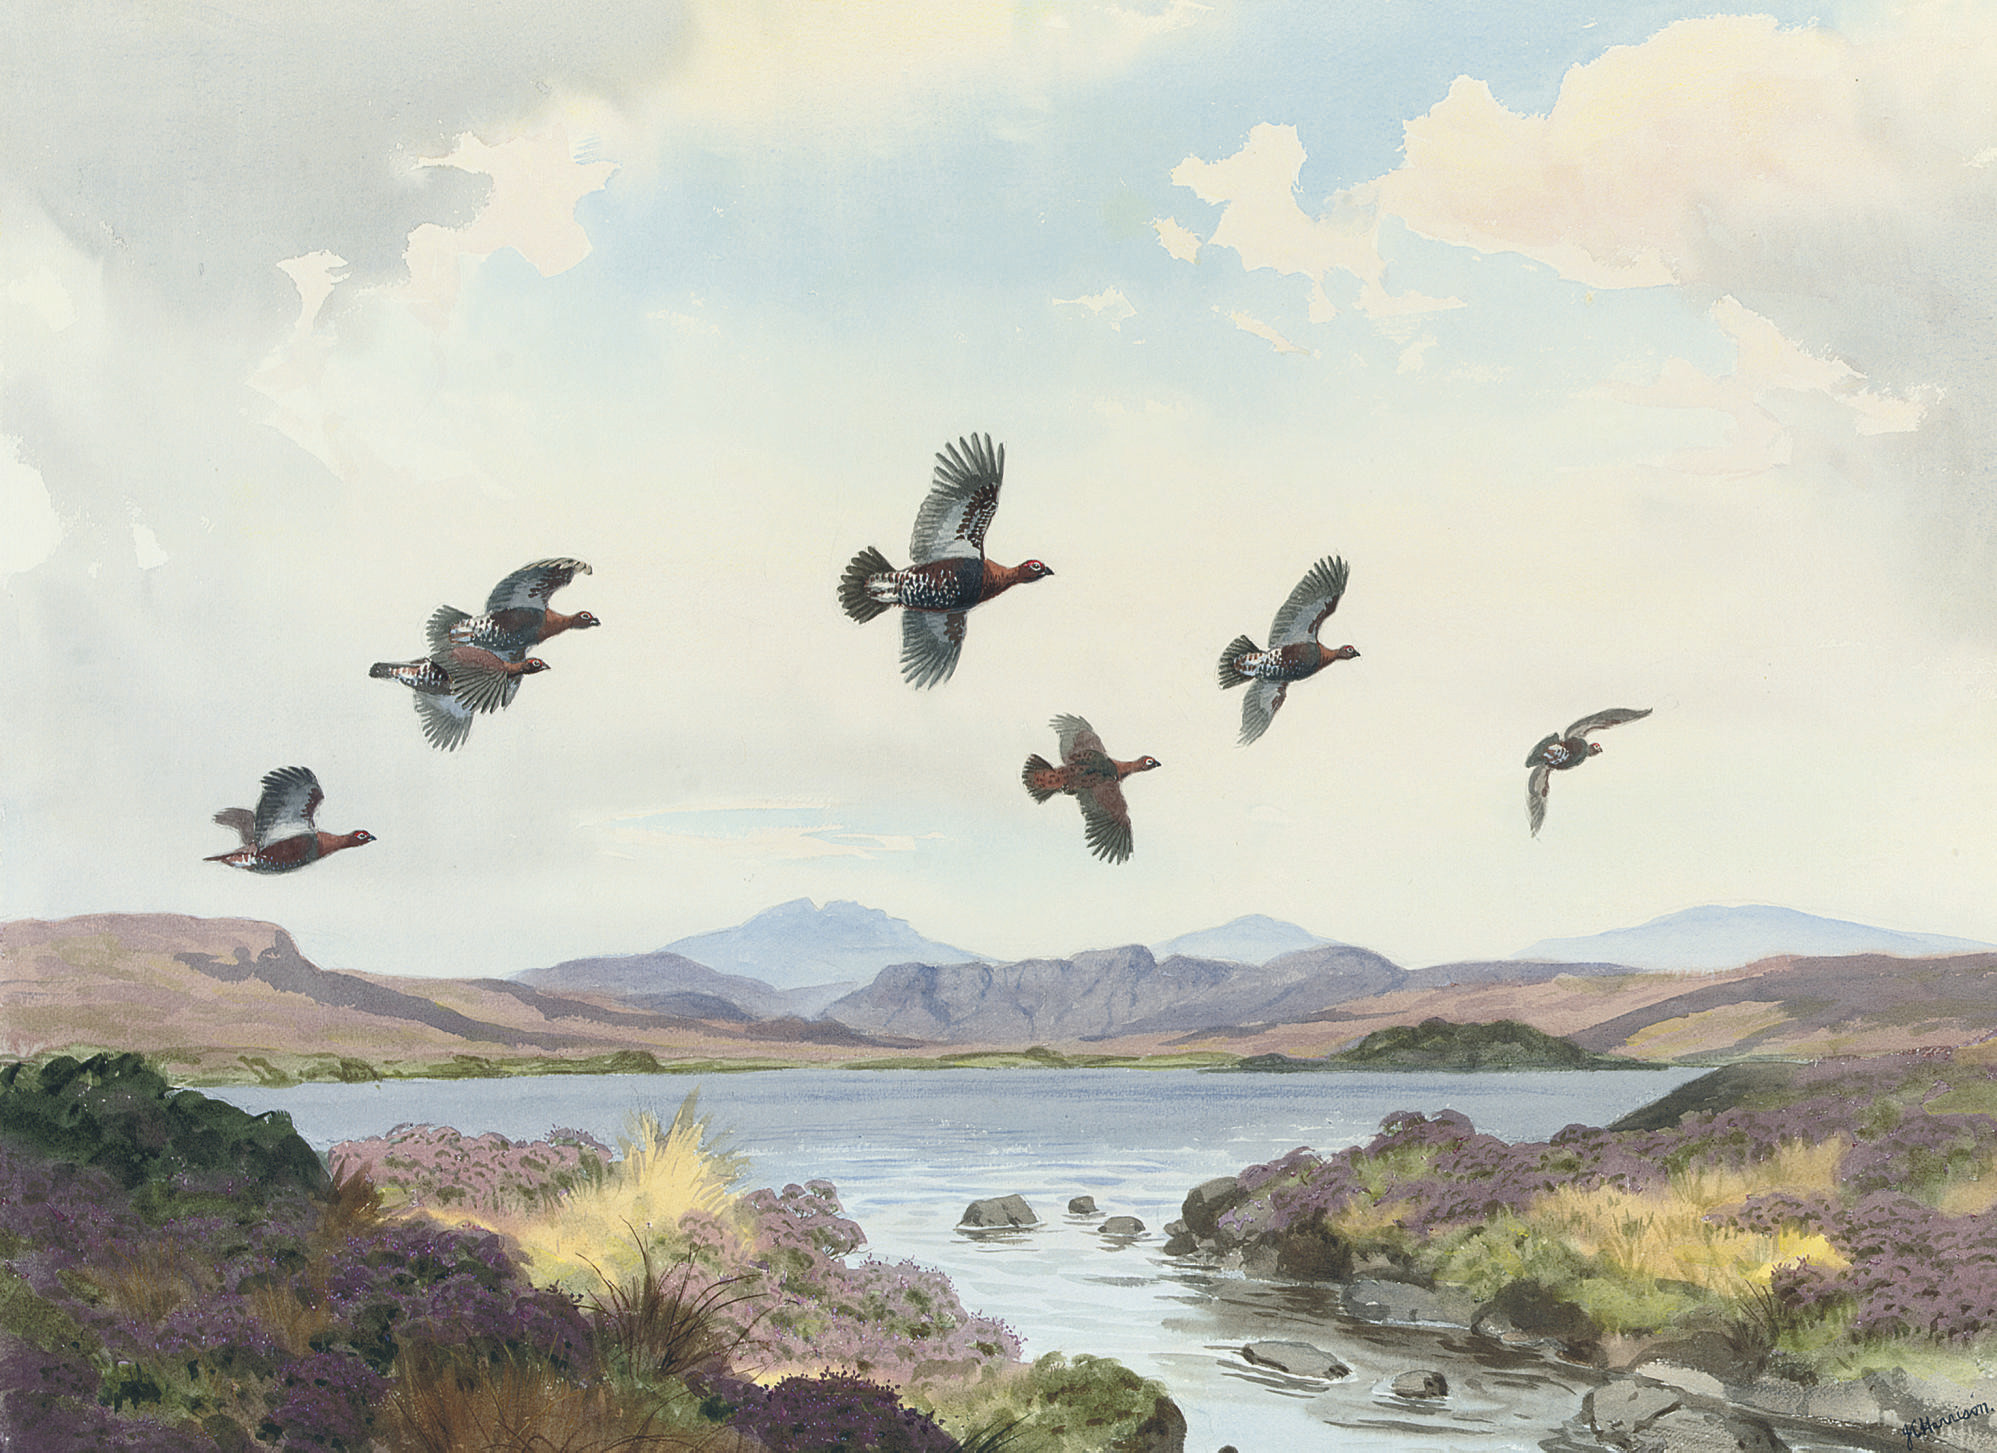 Red grouse in flight over a loch